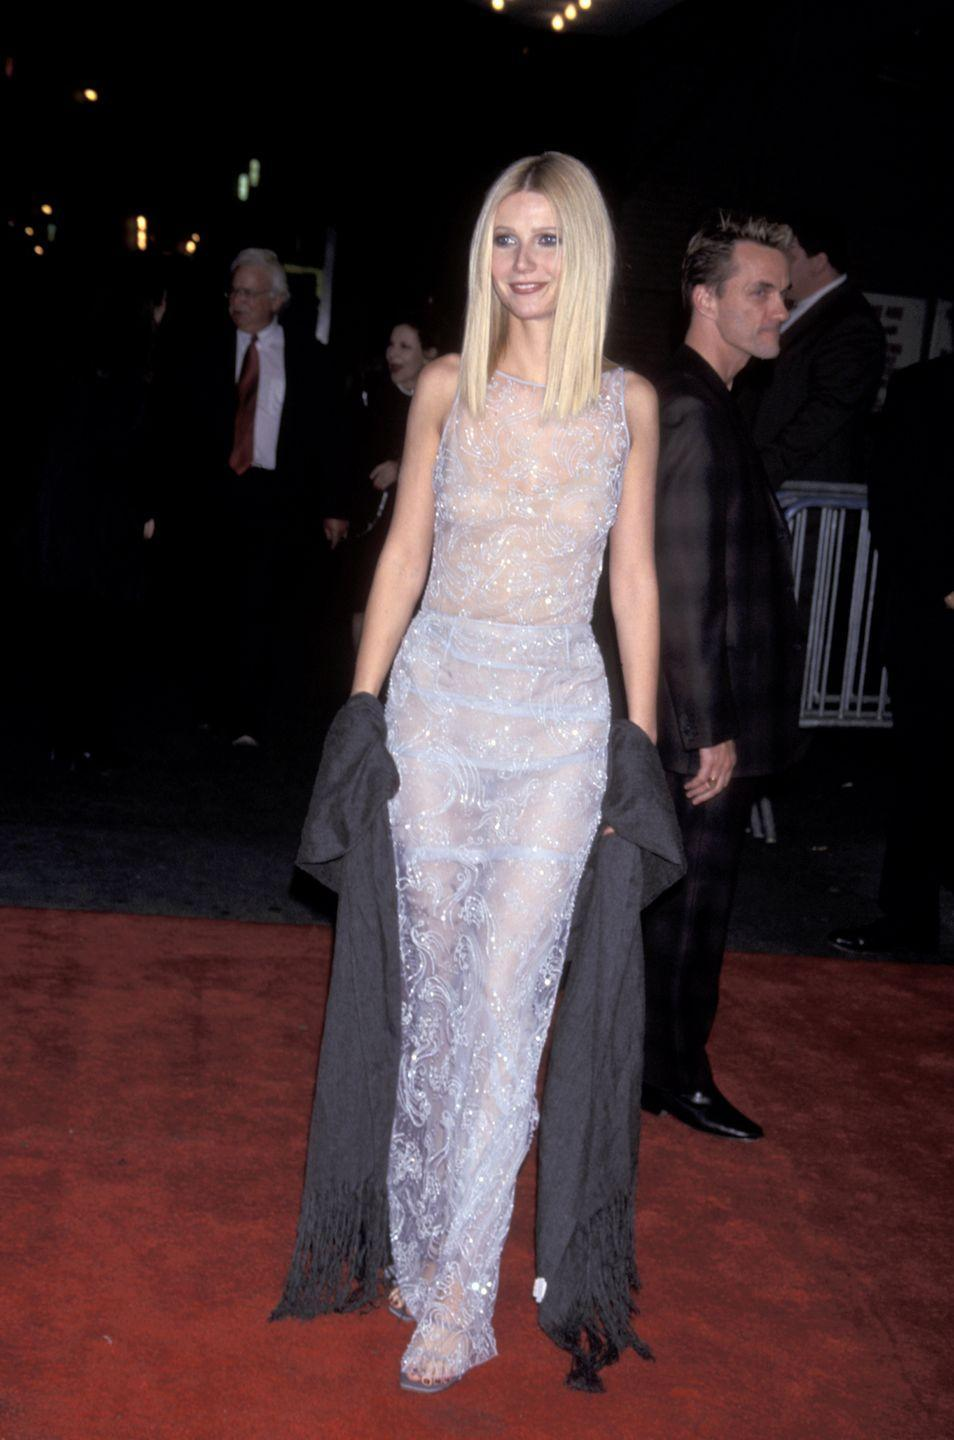 <p>At the New York city premiere of <em>Shakespeare in Love, </em>Gwyneth wore this very revealing beaded column on the red carpet. But hey, she looks pretty dang amazing in it. </p>